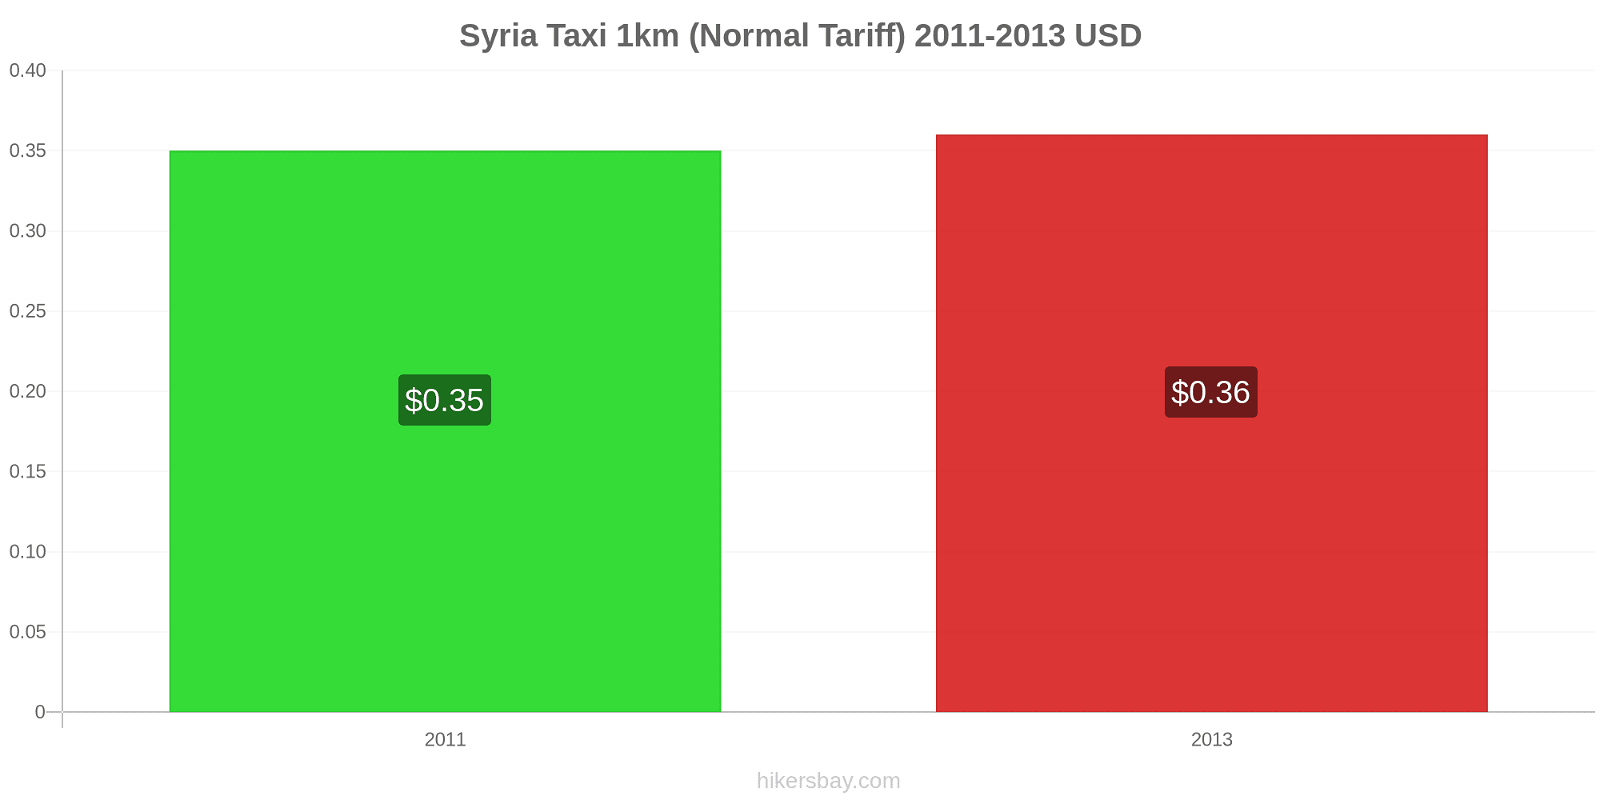 Syria price changes Taxi 1km (Normal Tariff) hikersbay.com